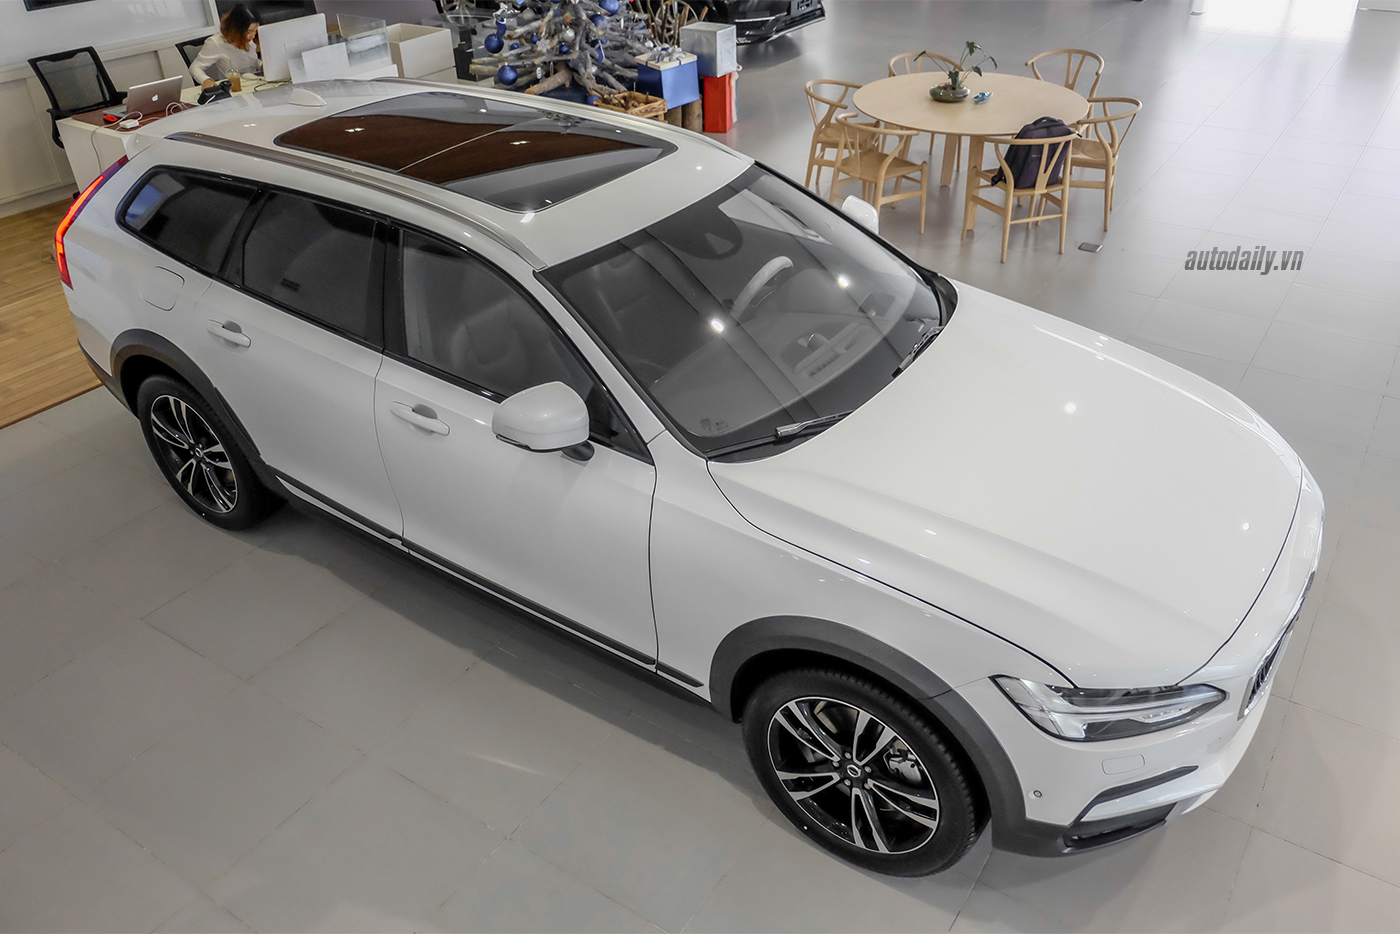 volvo-v90-cross-country-2018-1.jpg